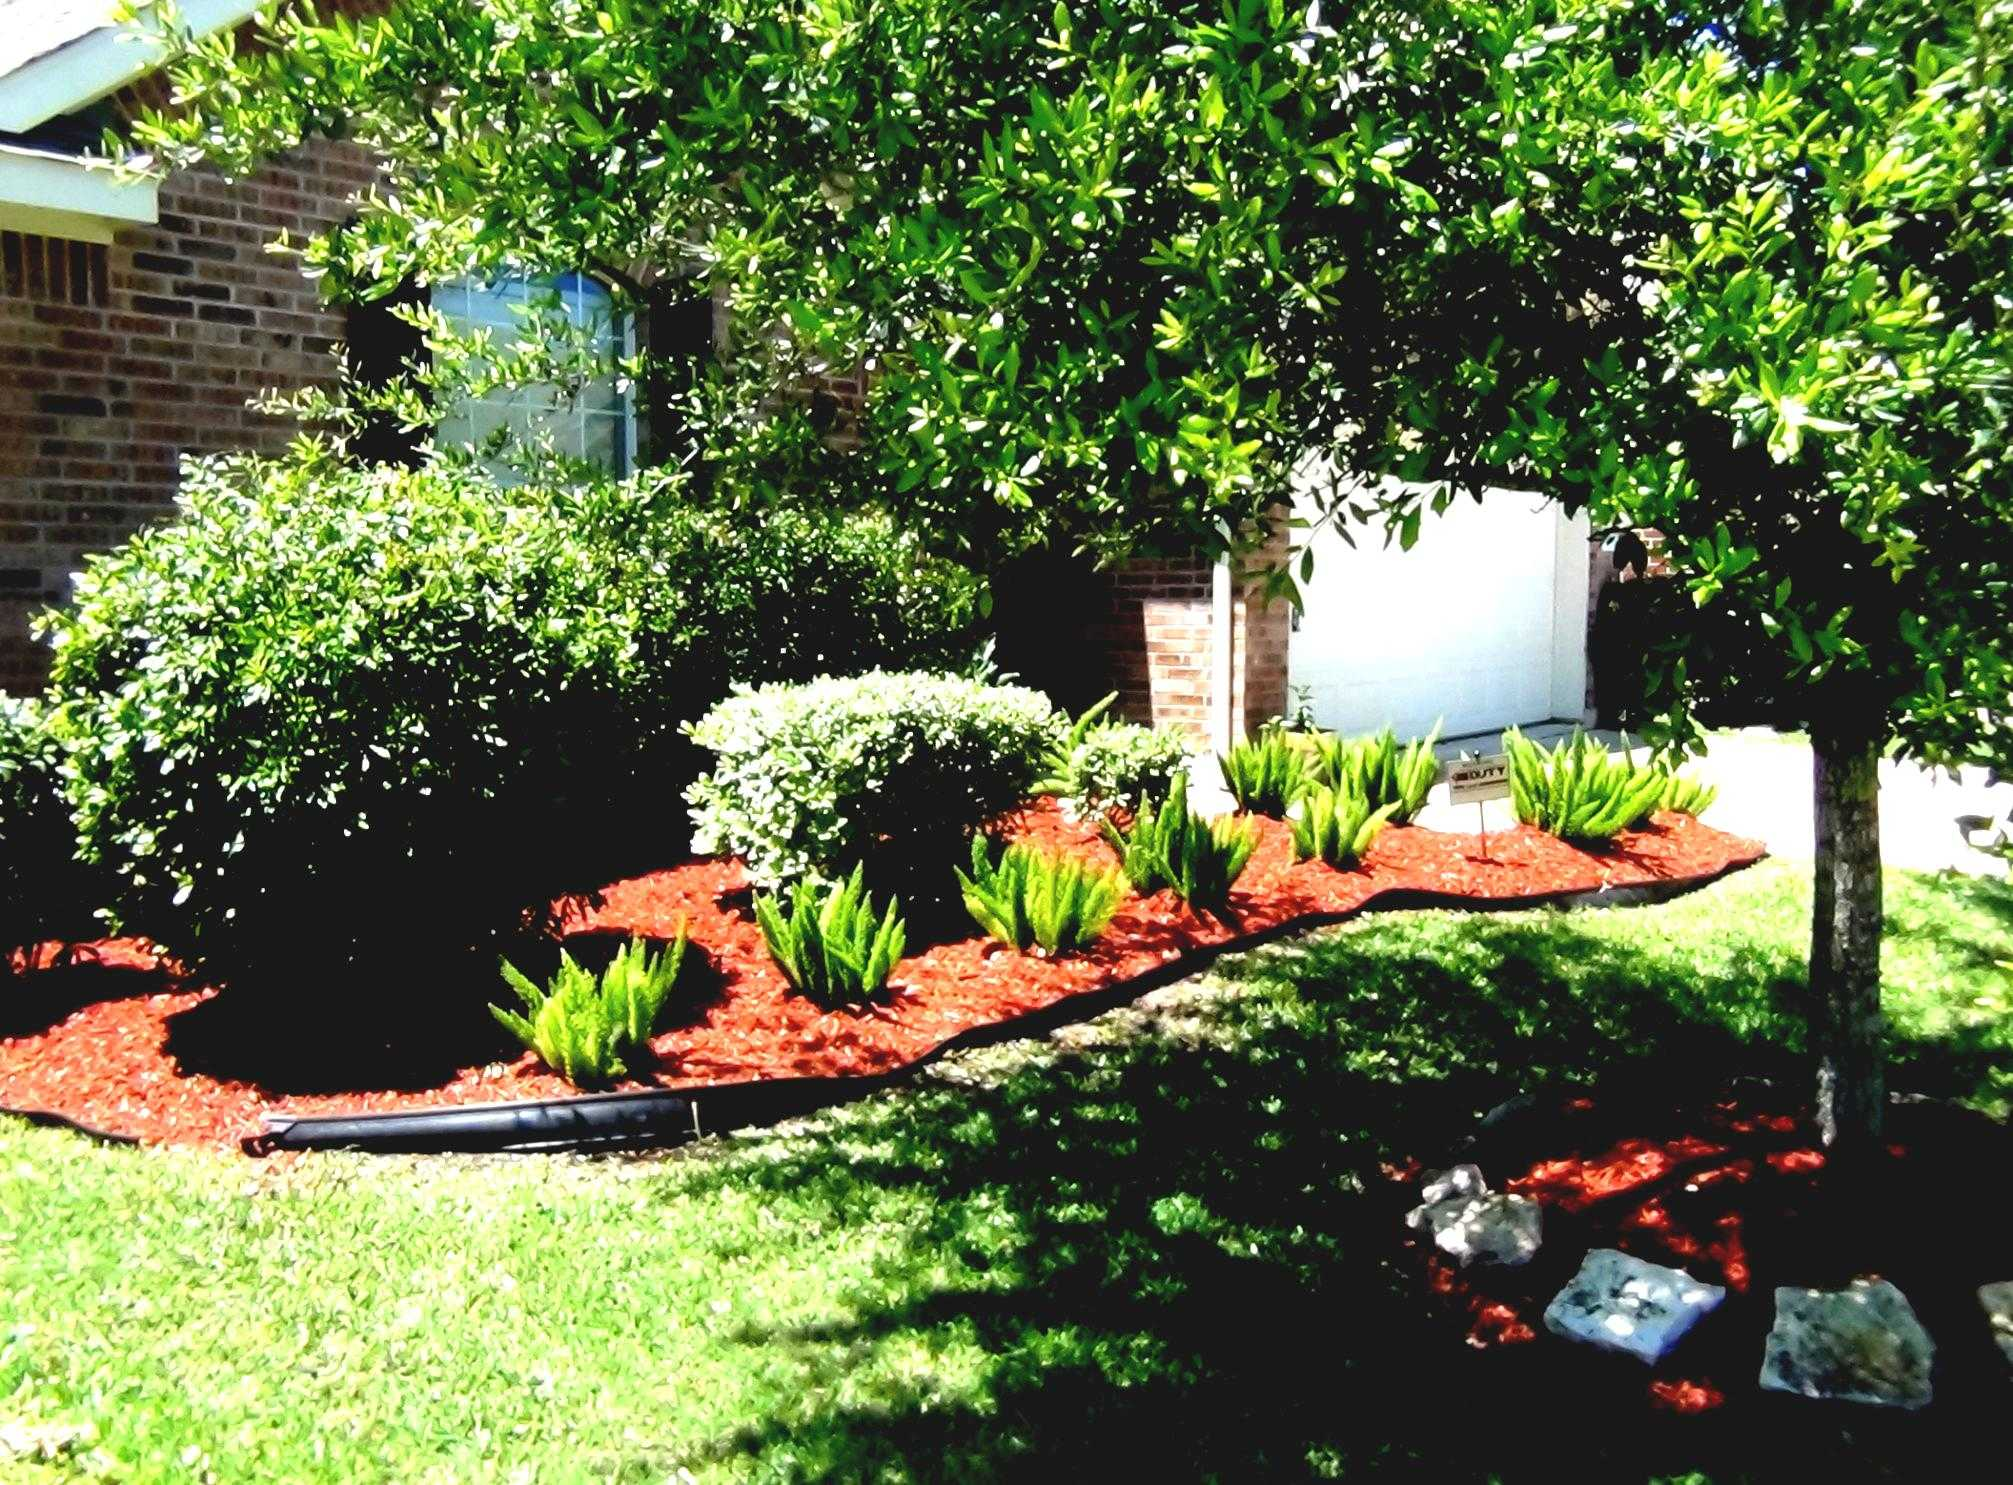 Landscaping With Mulch Ideas : Climate change and your garden outdoor rooms landscape design